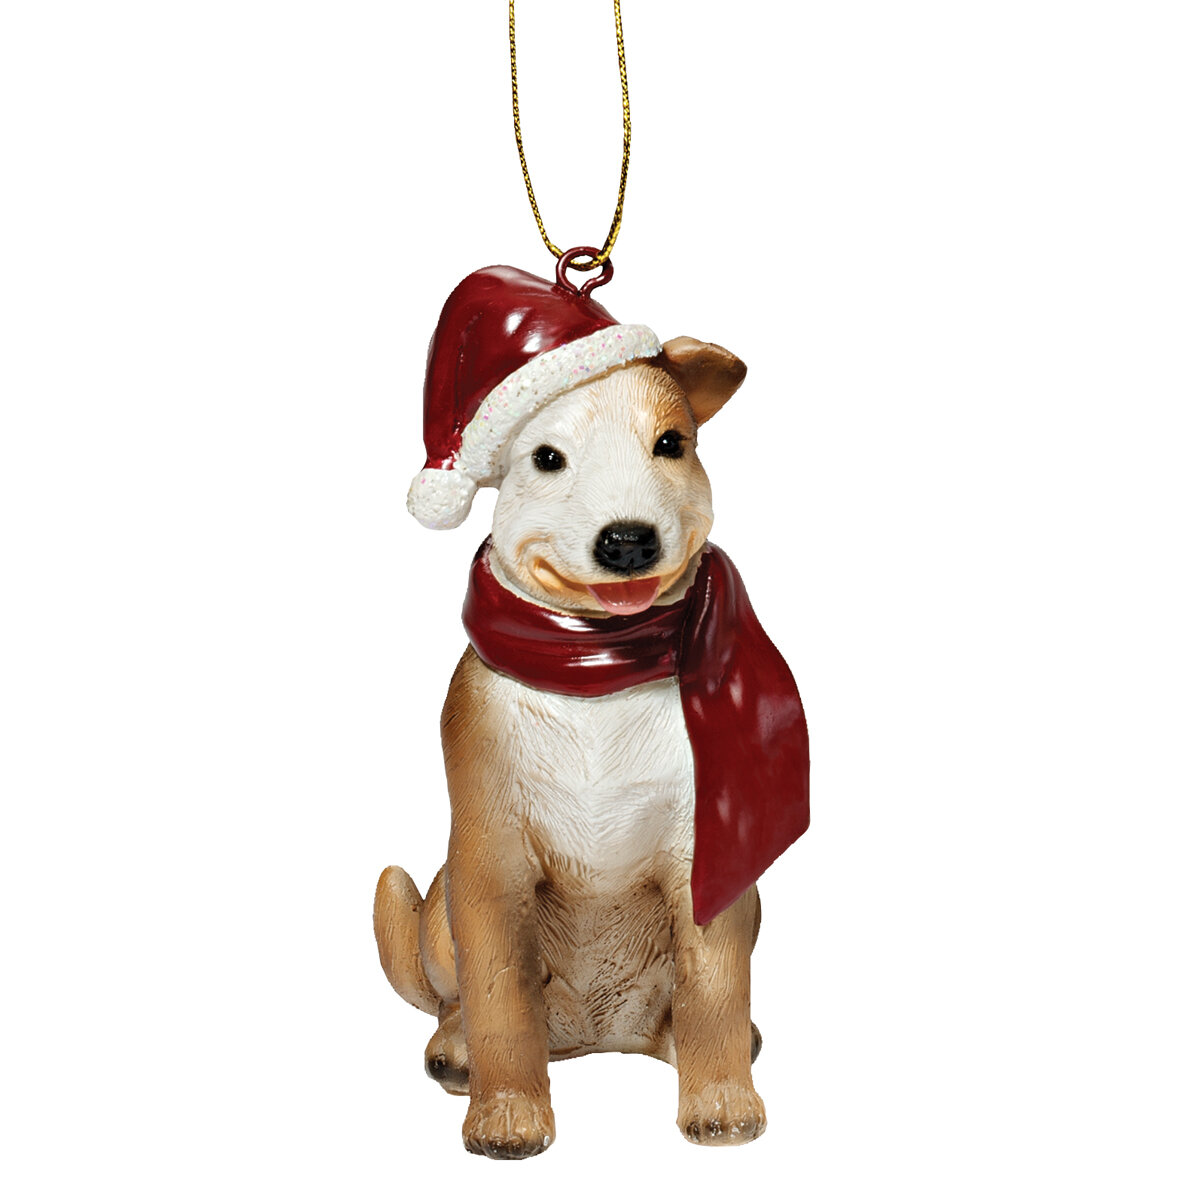 Pitbull Christmas Ornament.Pitbull Holiday Dog Ornament